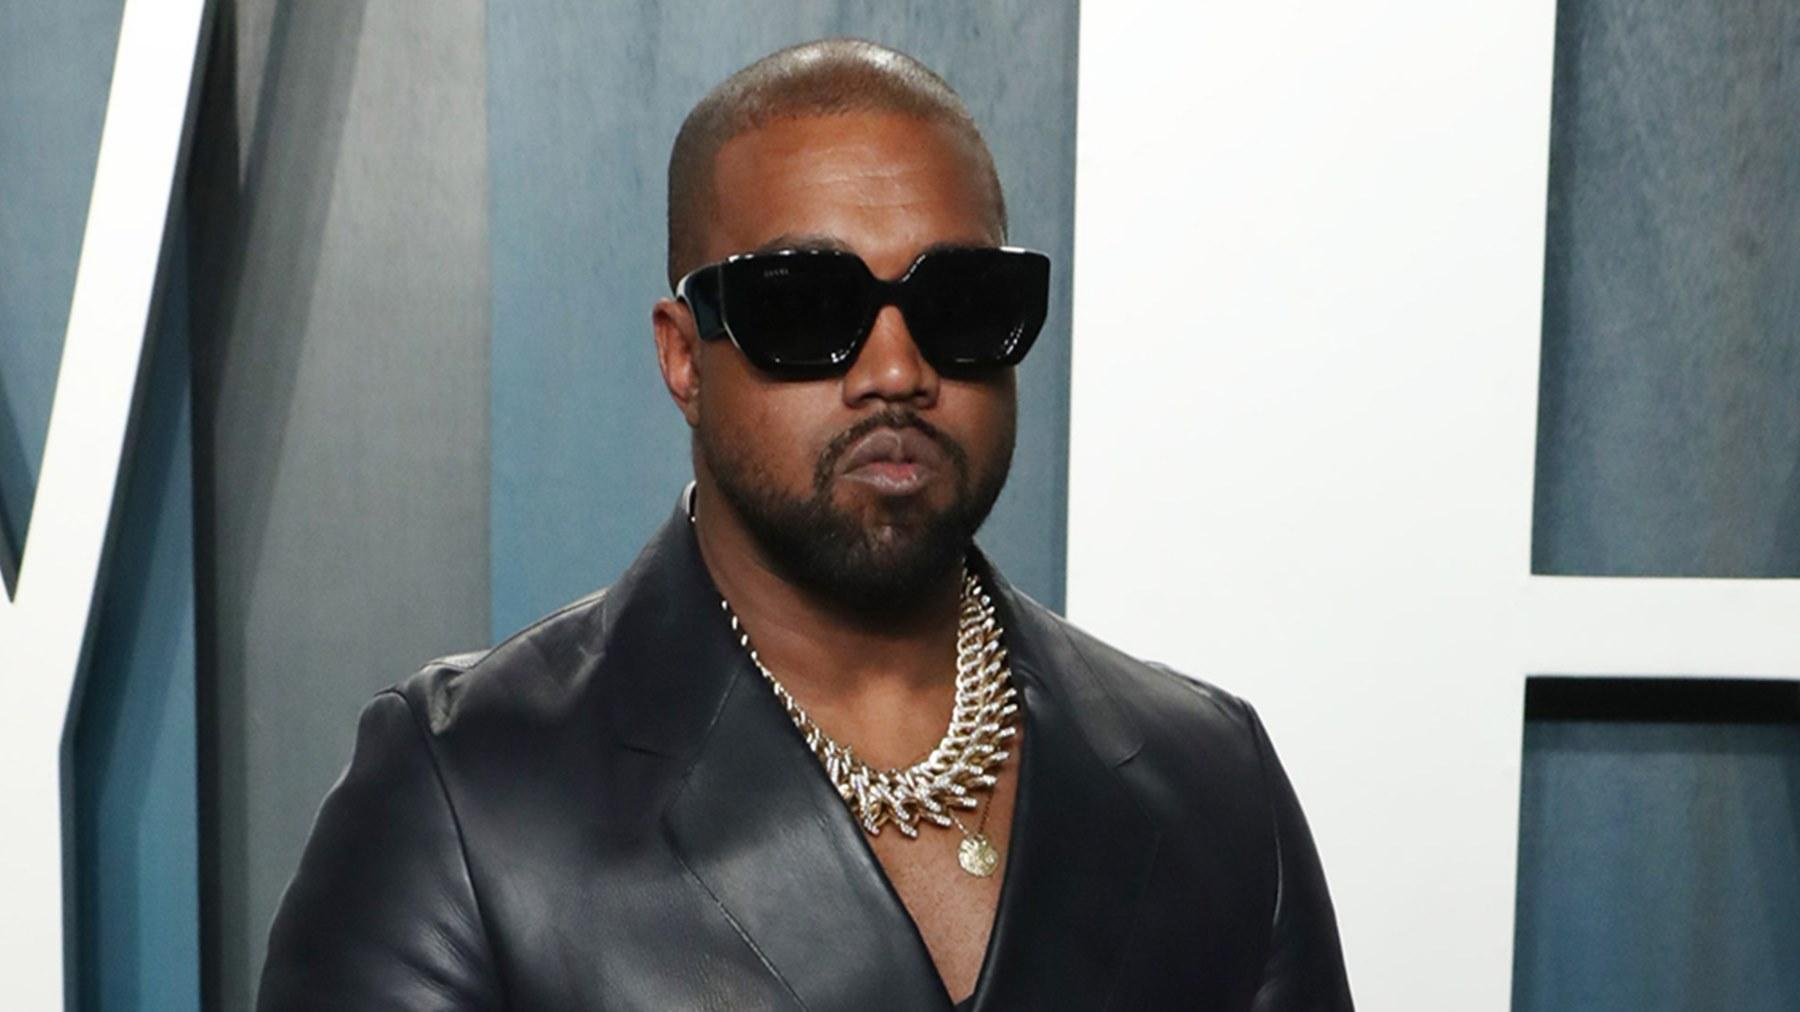 Kanye West Is Reportedly Dealing With A Bipolar Episode -- Critics Blame His Family And The Media For Giving Him Too Much Attention Recently